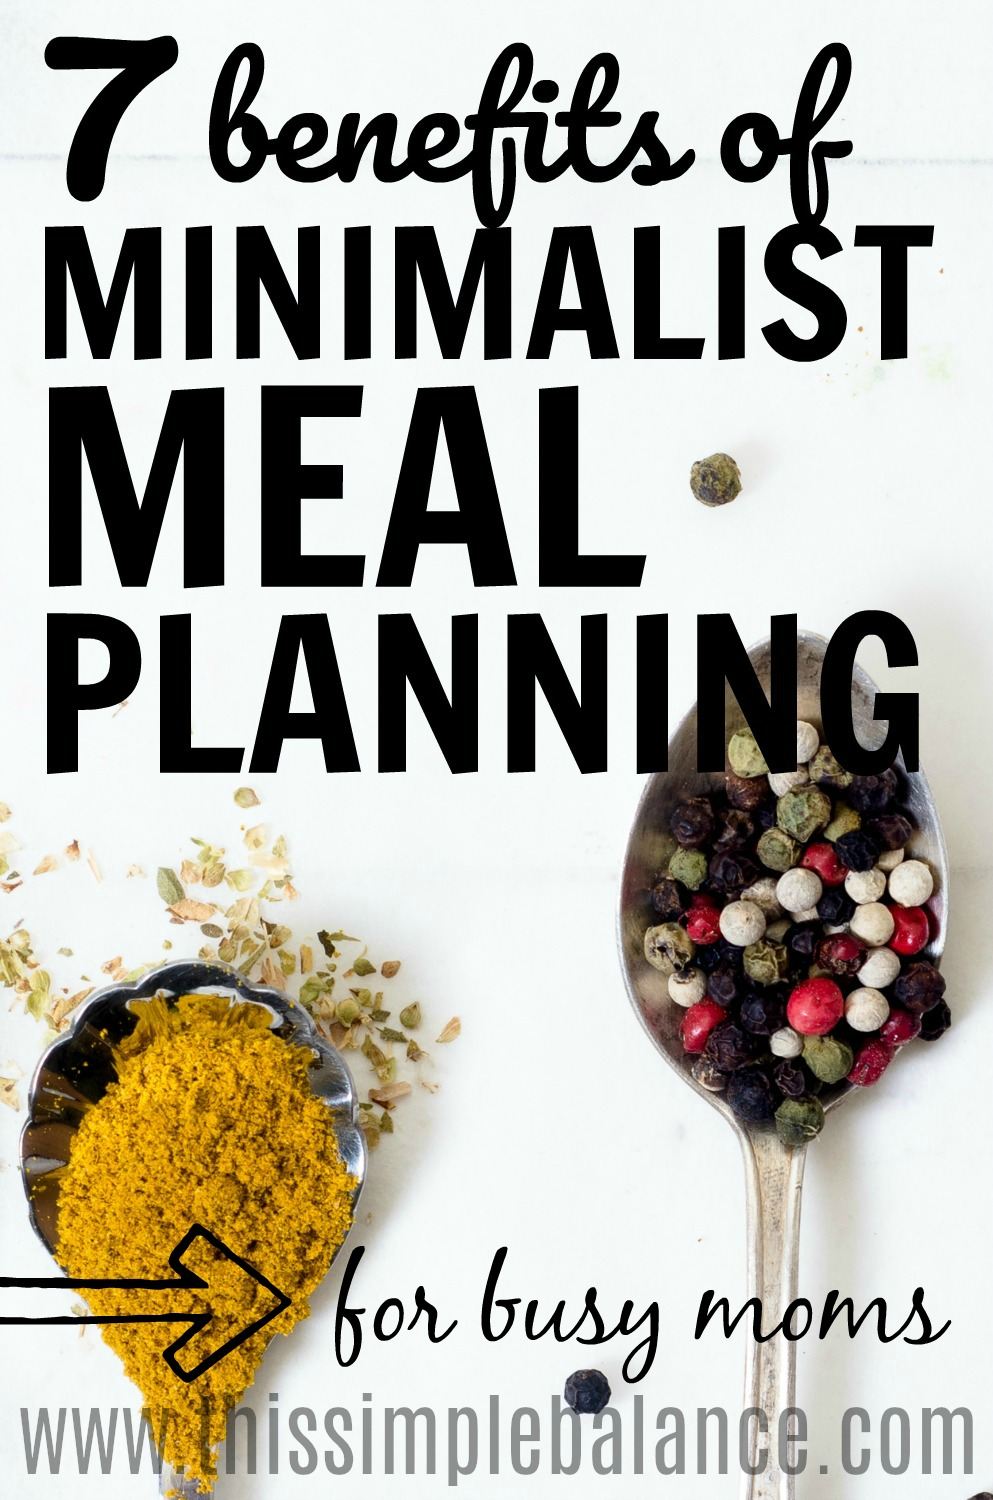 Benefits of minimalist meal planning for busy moms.